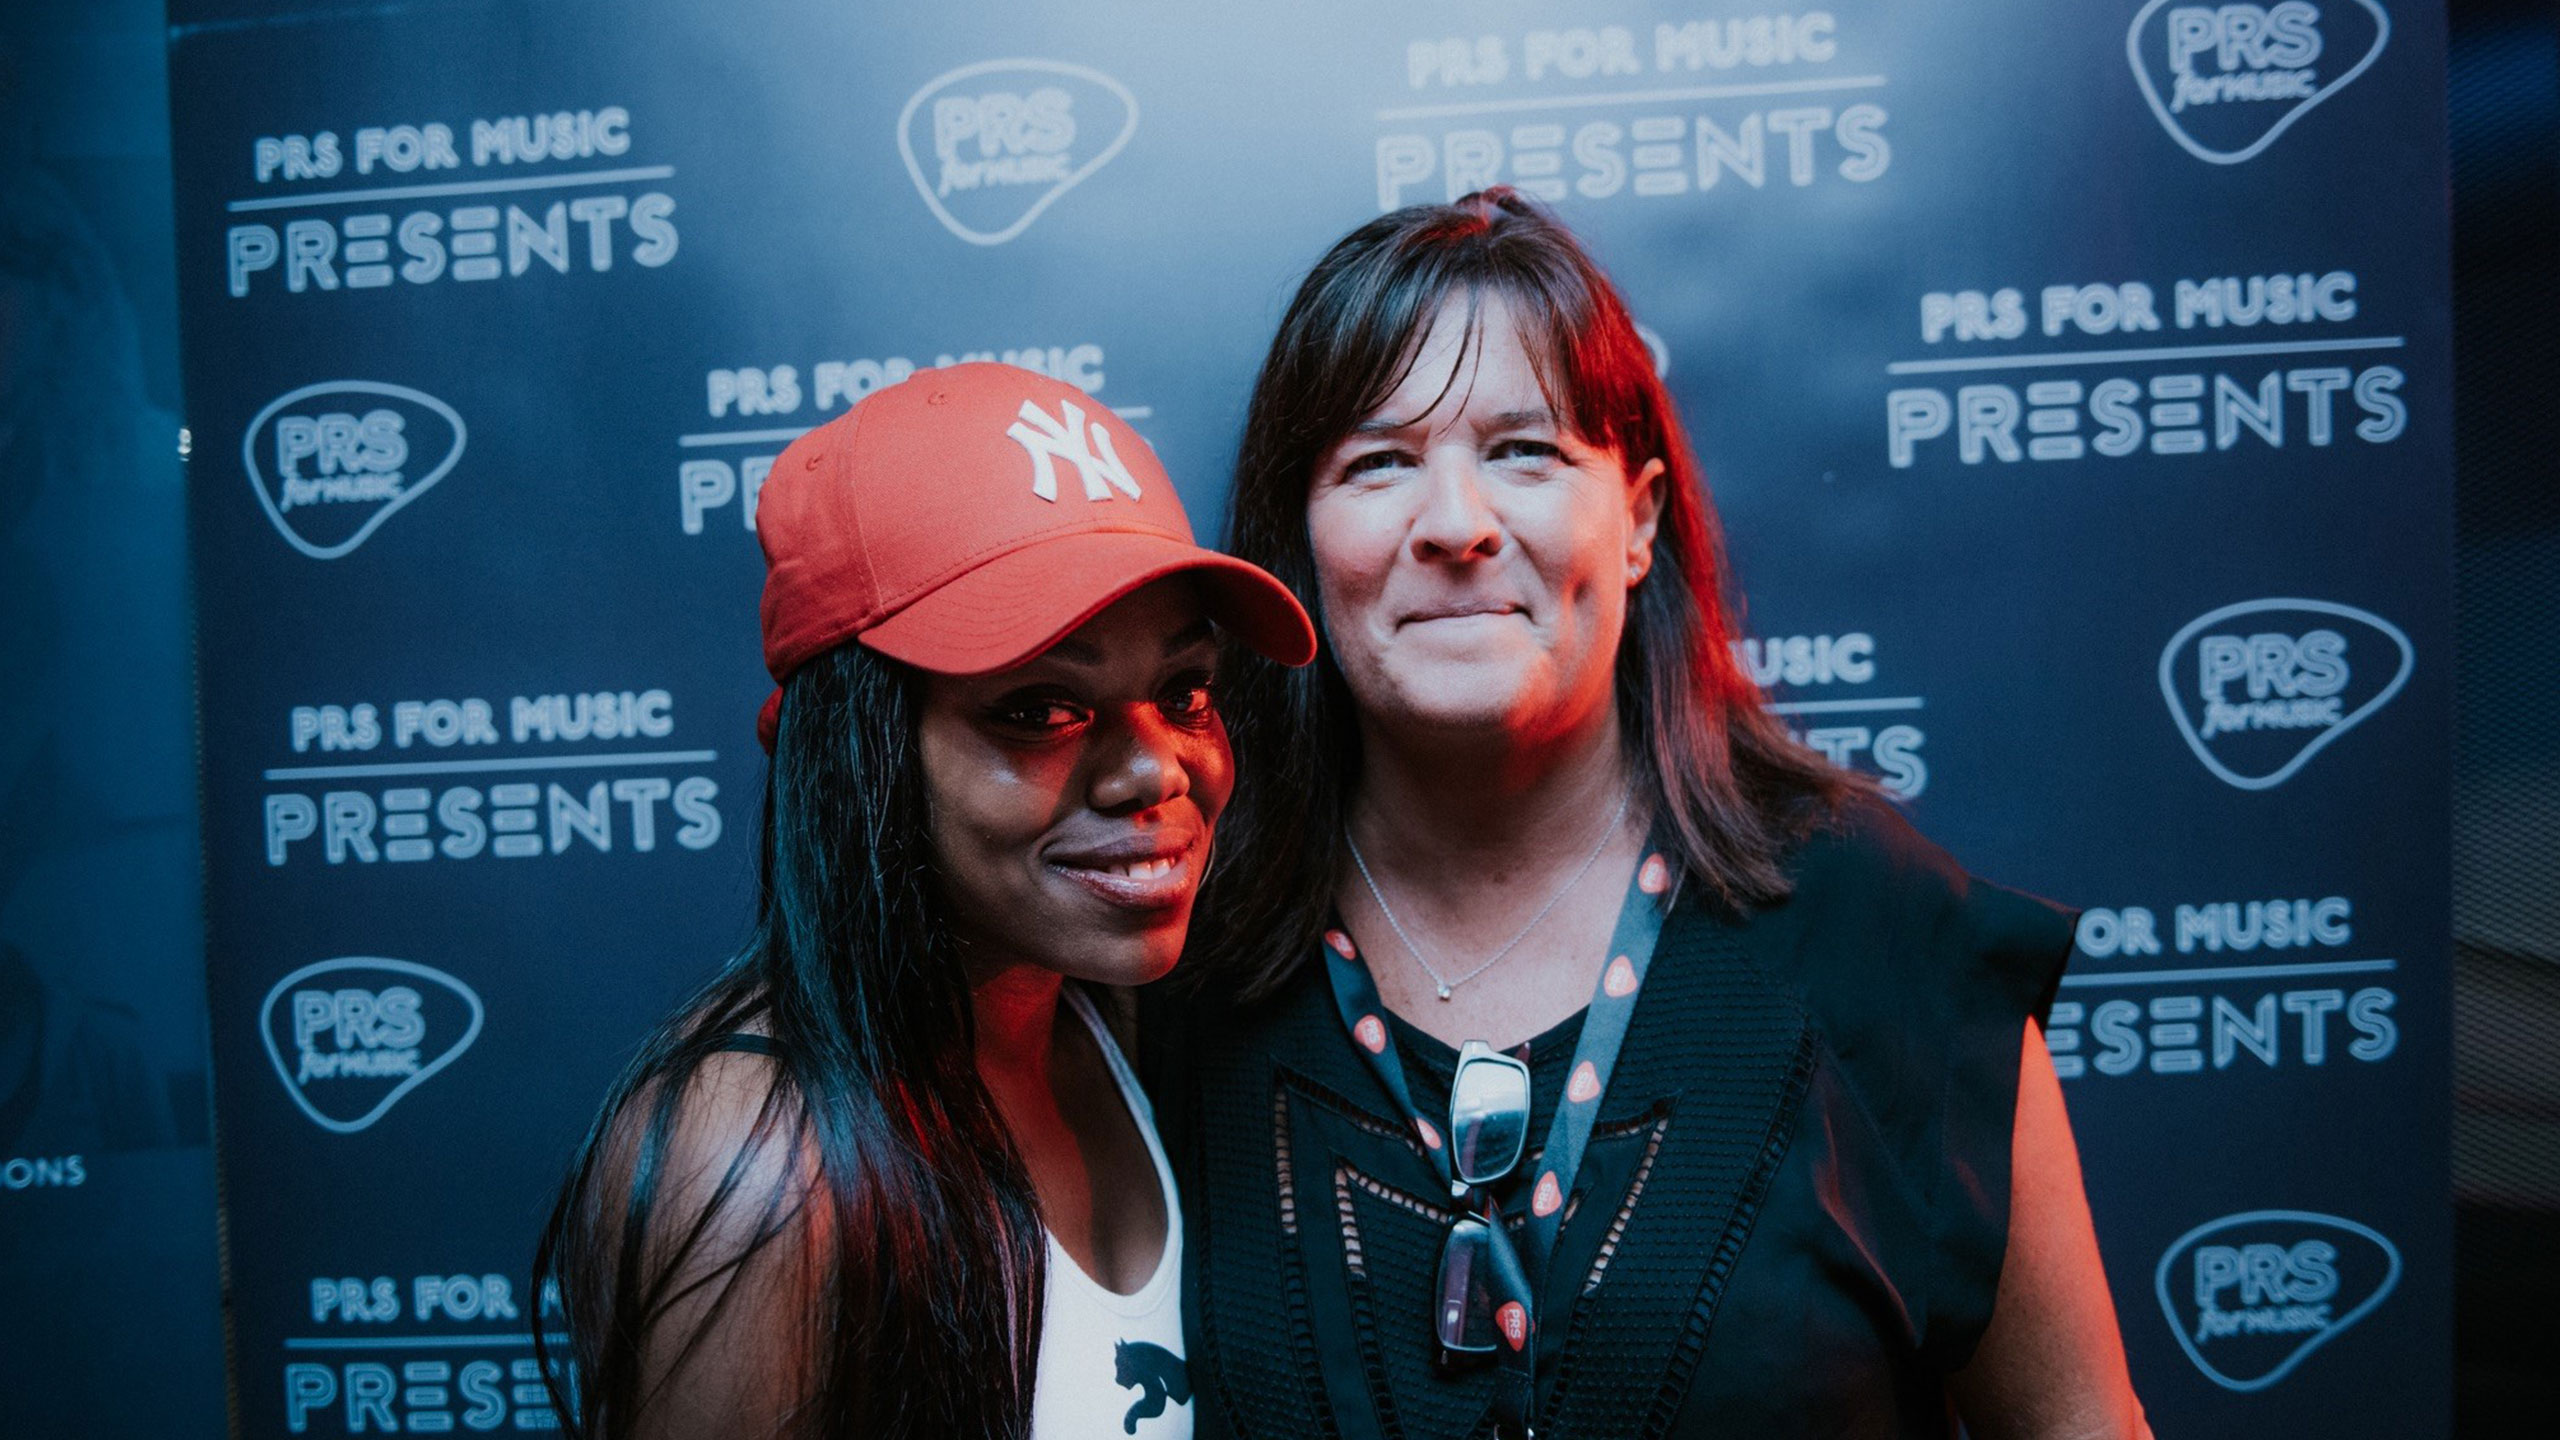 Lady Leshurr with Karen Buse at PRS for Music Presents